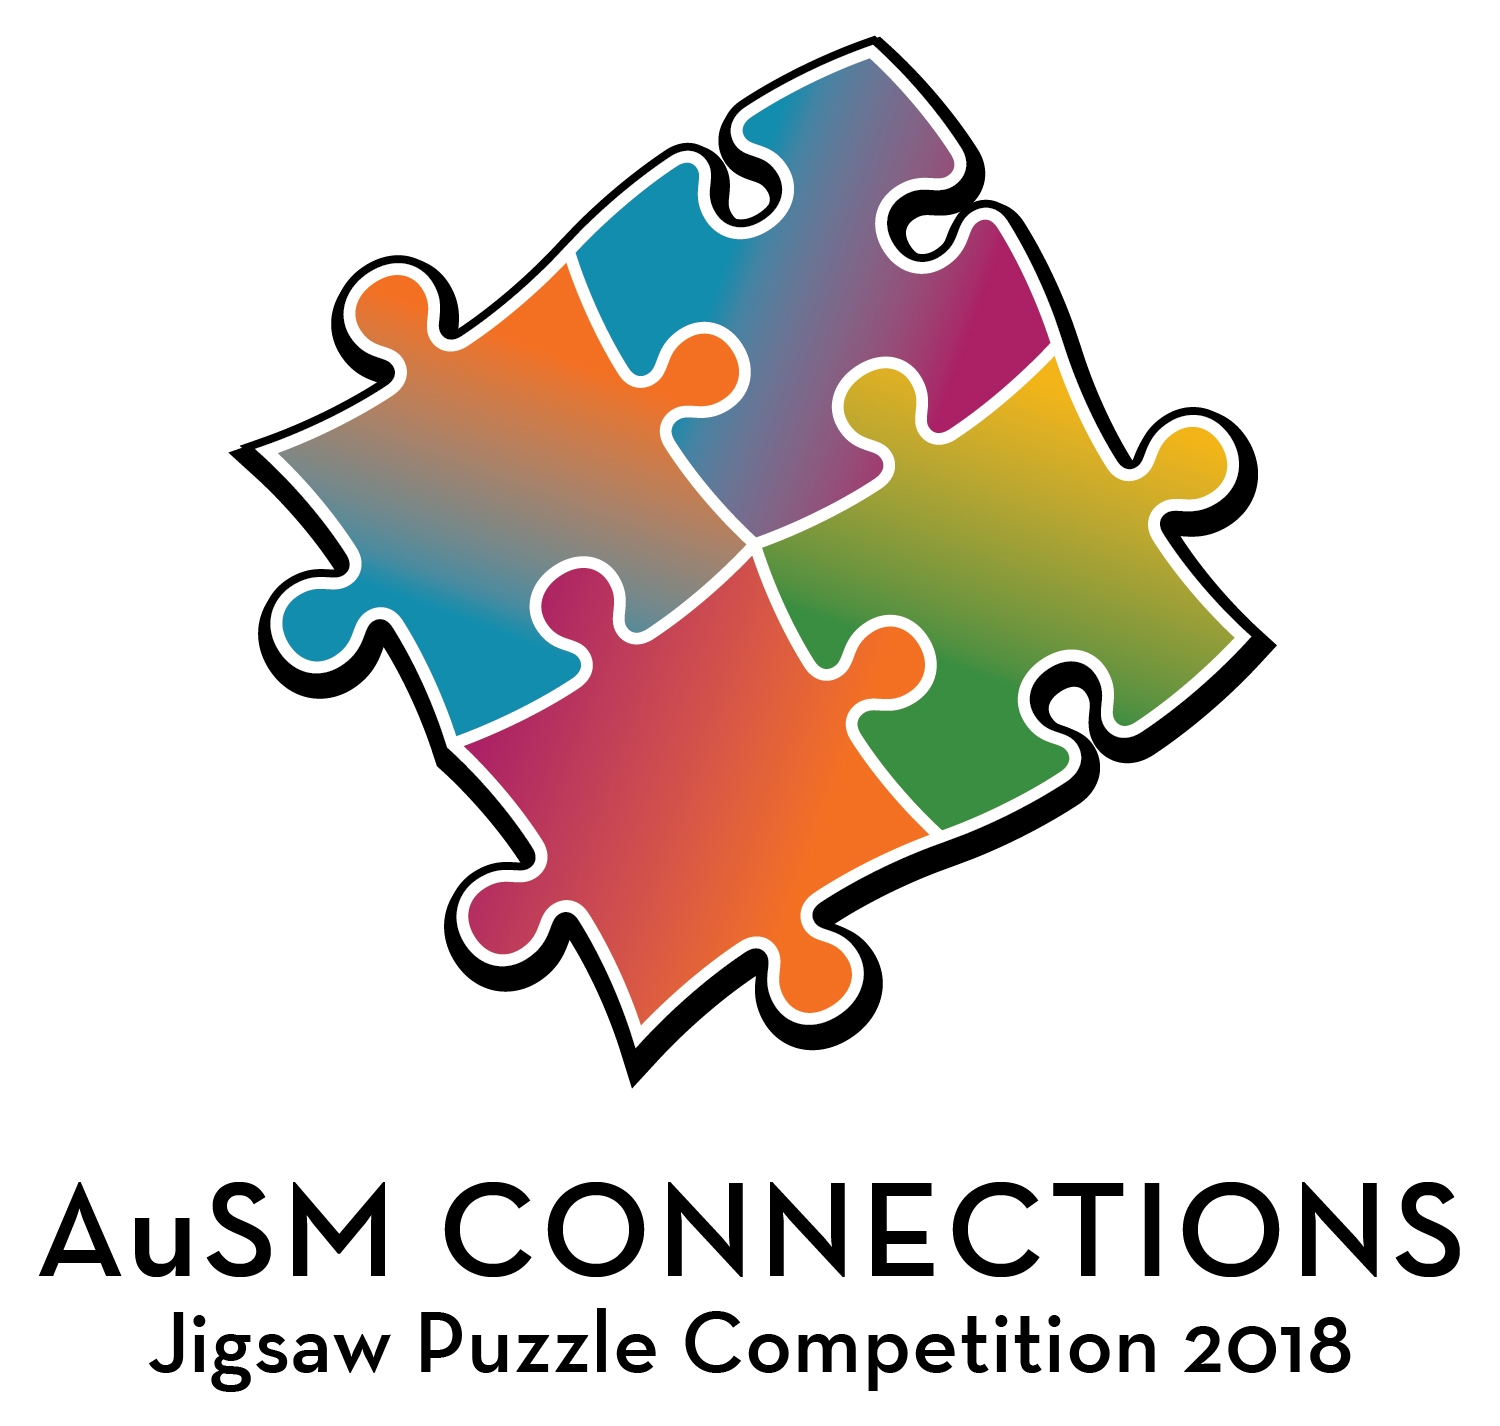 AuSM Connections Jigsaw Puzzle Competition